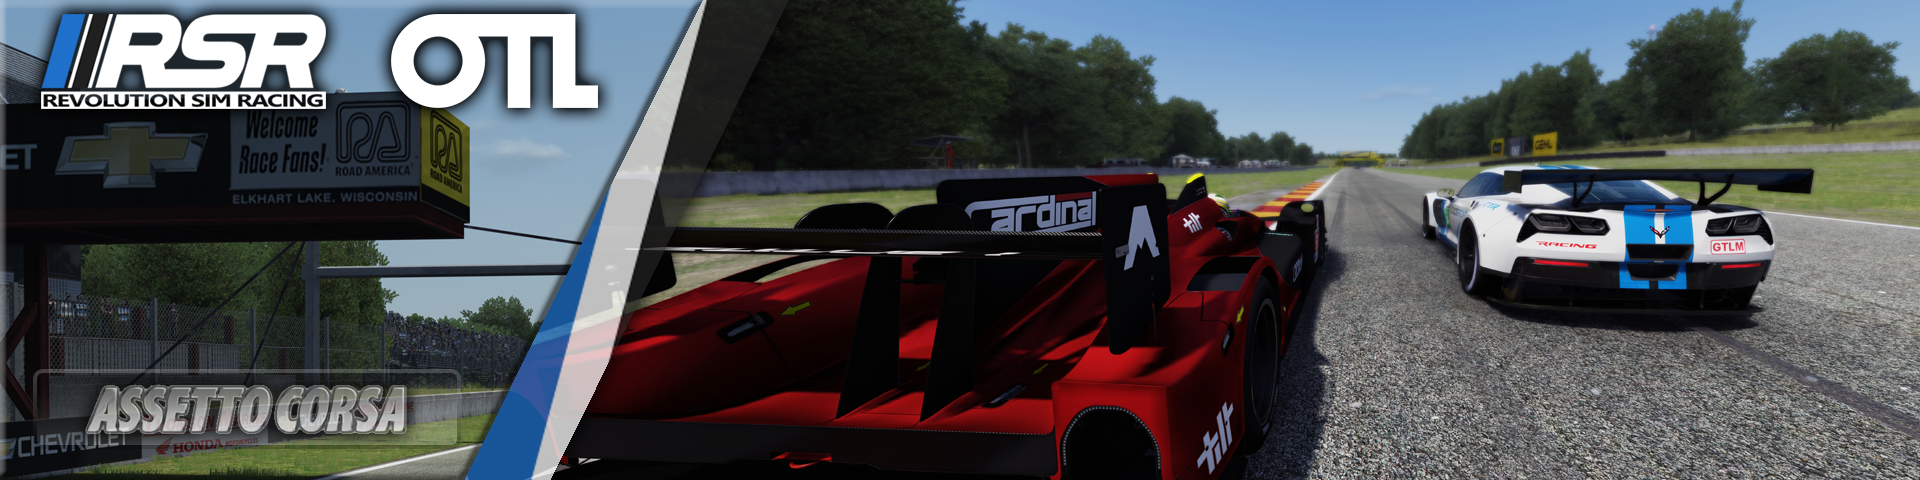 Round 3 - Road America.png